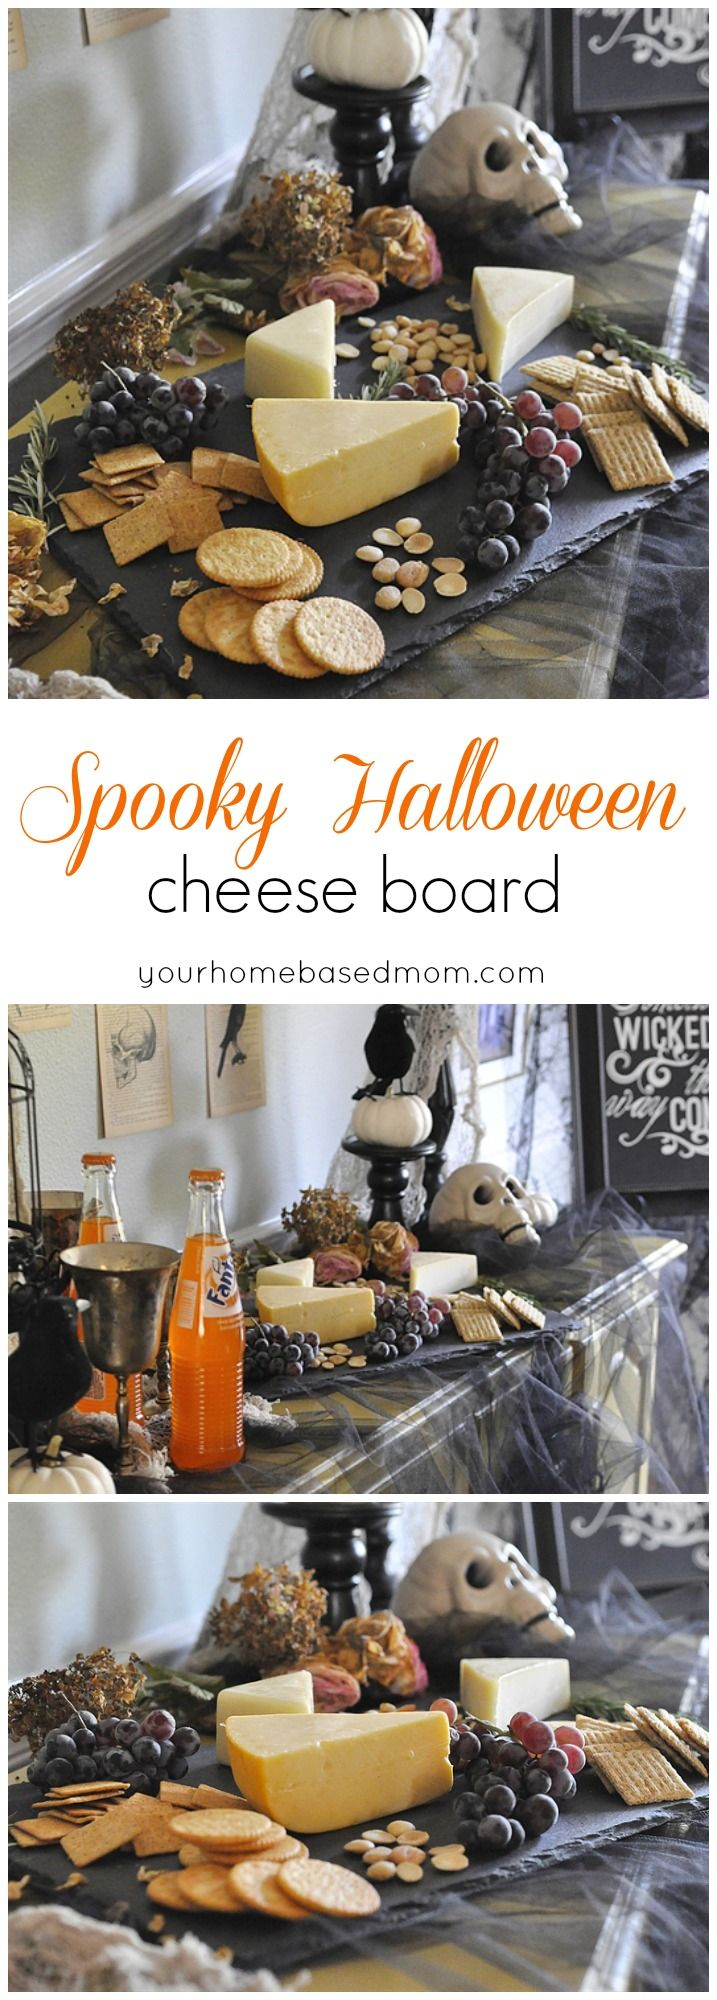 Spooky Halloween Cheeseboard, for your Halloween dinner party#SpookySnackLab #IWorkWithCoke